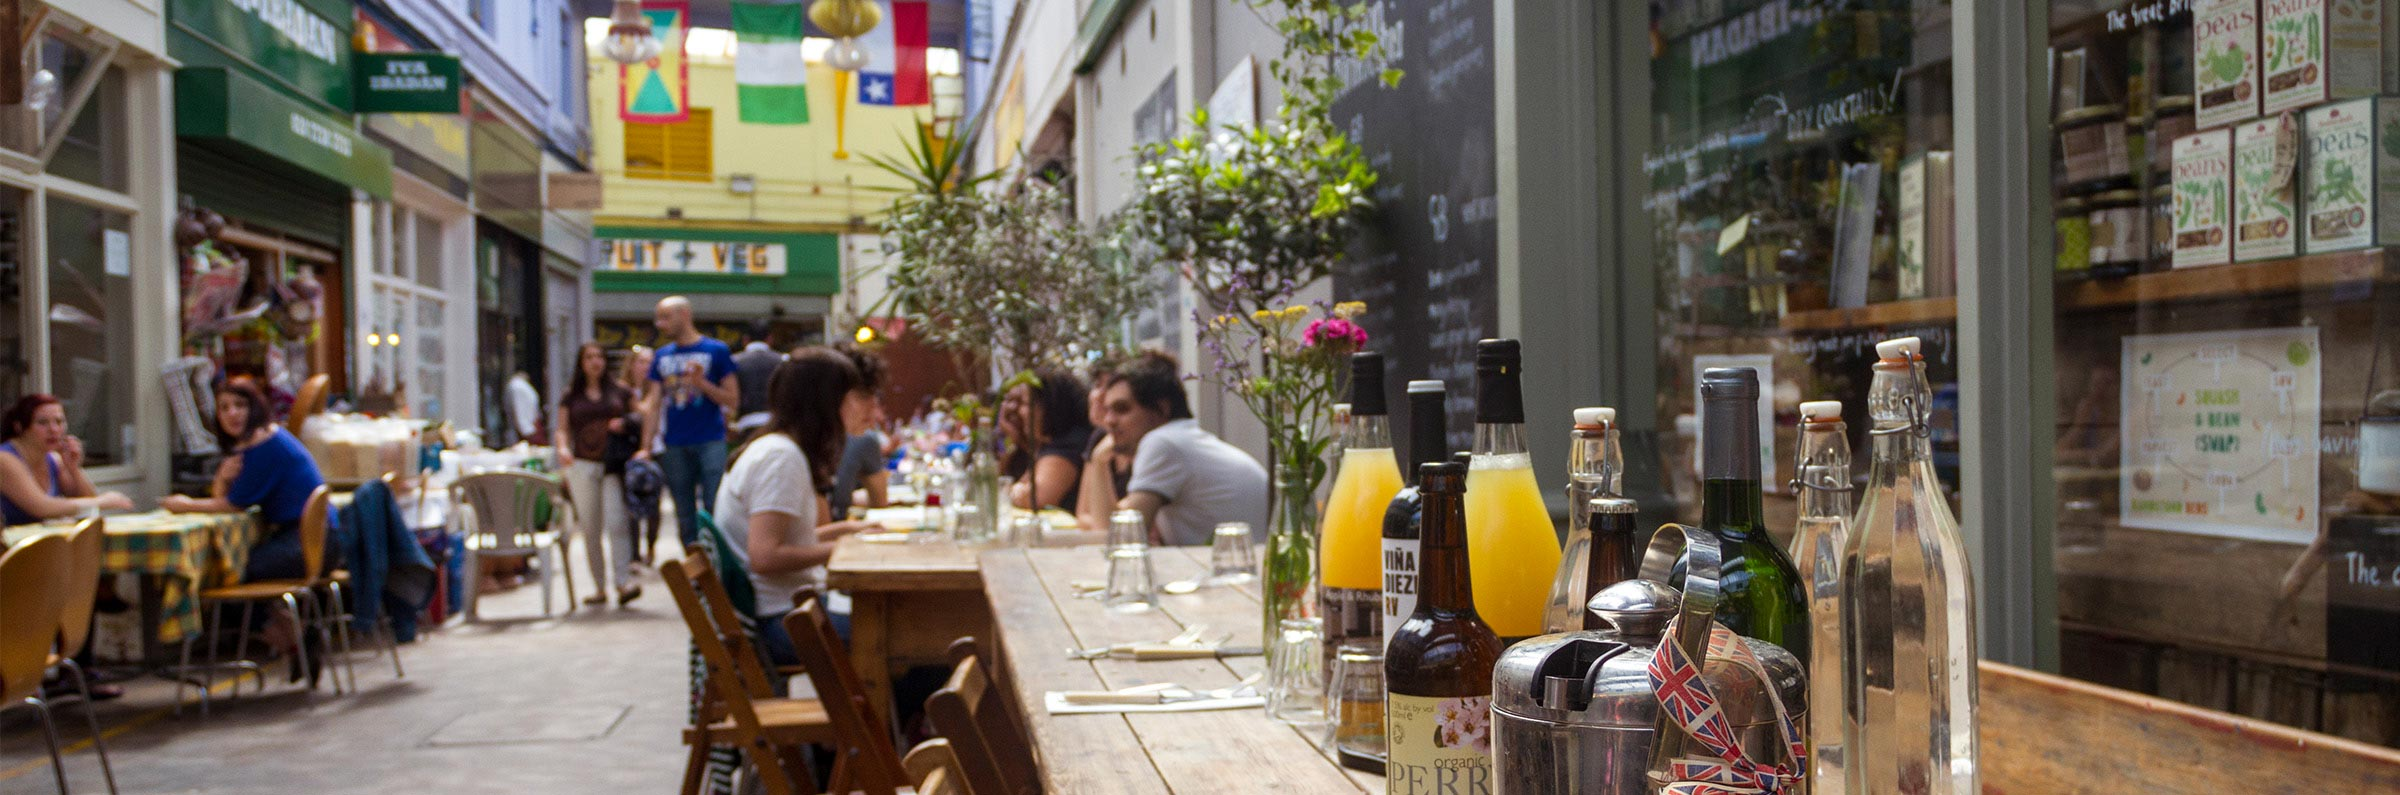 Food and drink in London